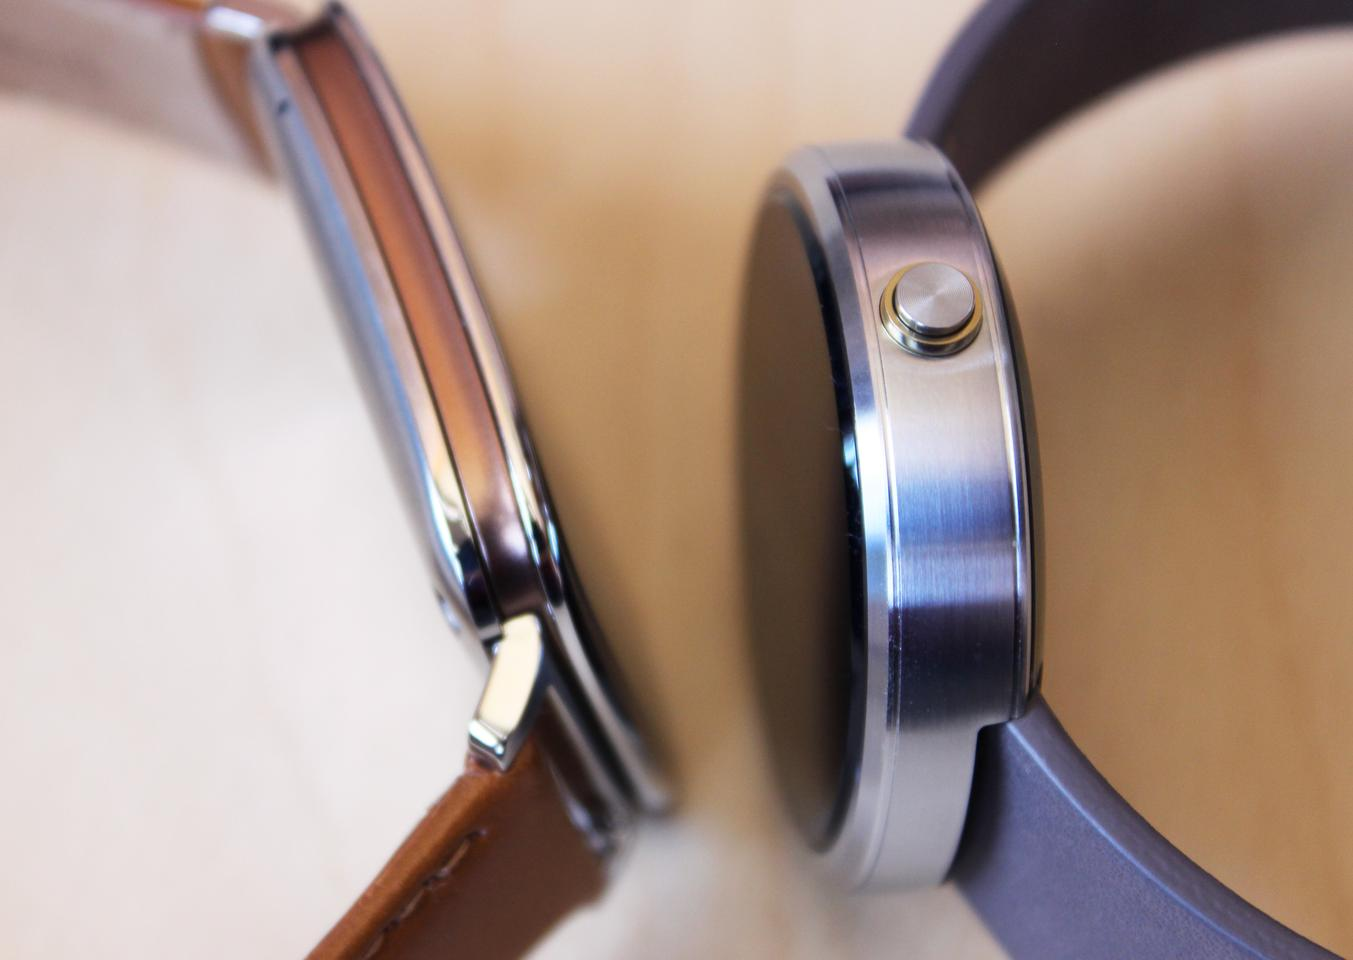 The Moto 360 (right) is 22 percent thicker than the Asus ZenWatch (Photo: Will Shanklin/Gizmag.com)